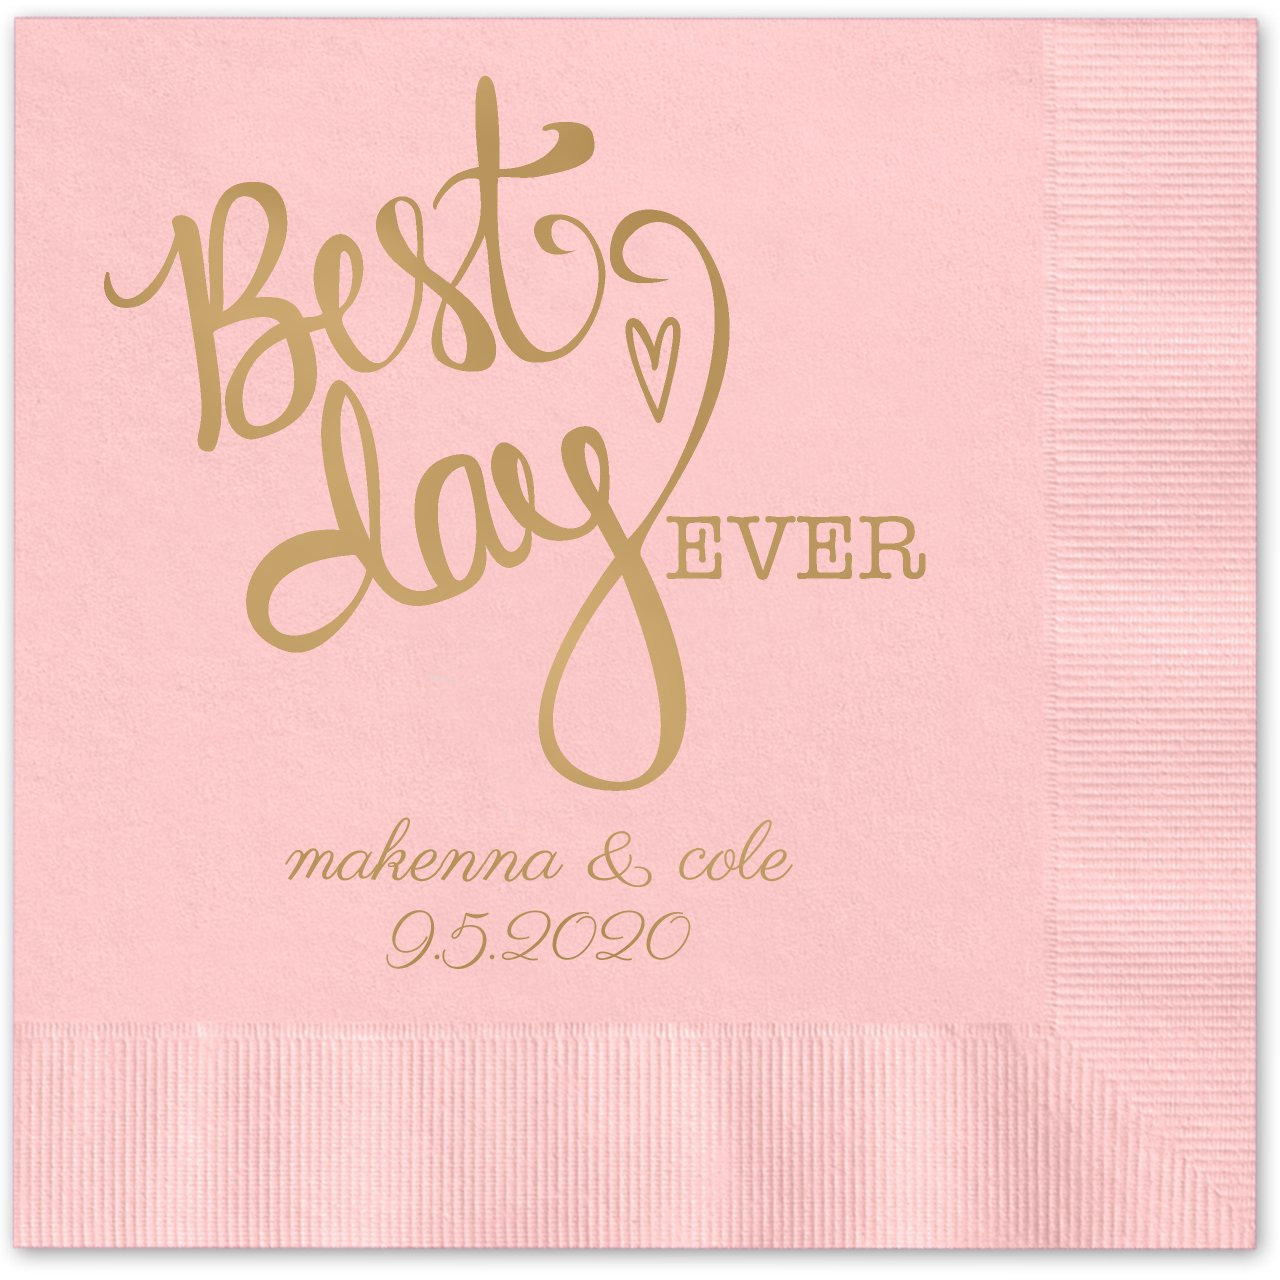 Canopy Street Best Day Ever Heart Personalized Beverage Cocktail Napkins - 100 Paper Napkins with Choice of foil